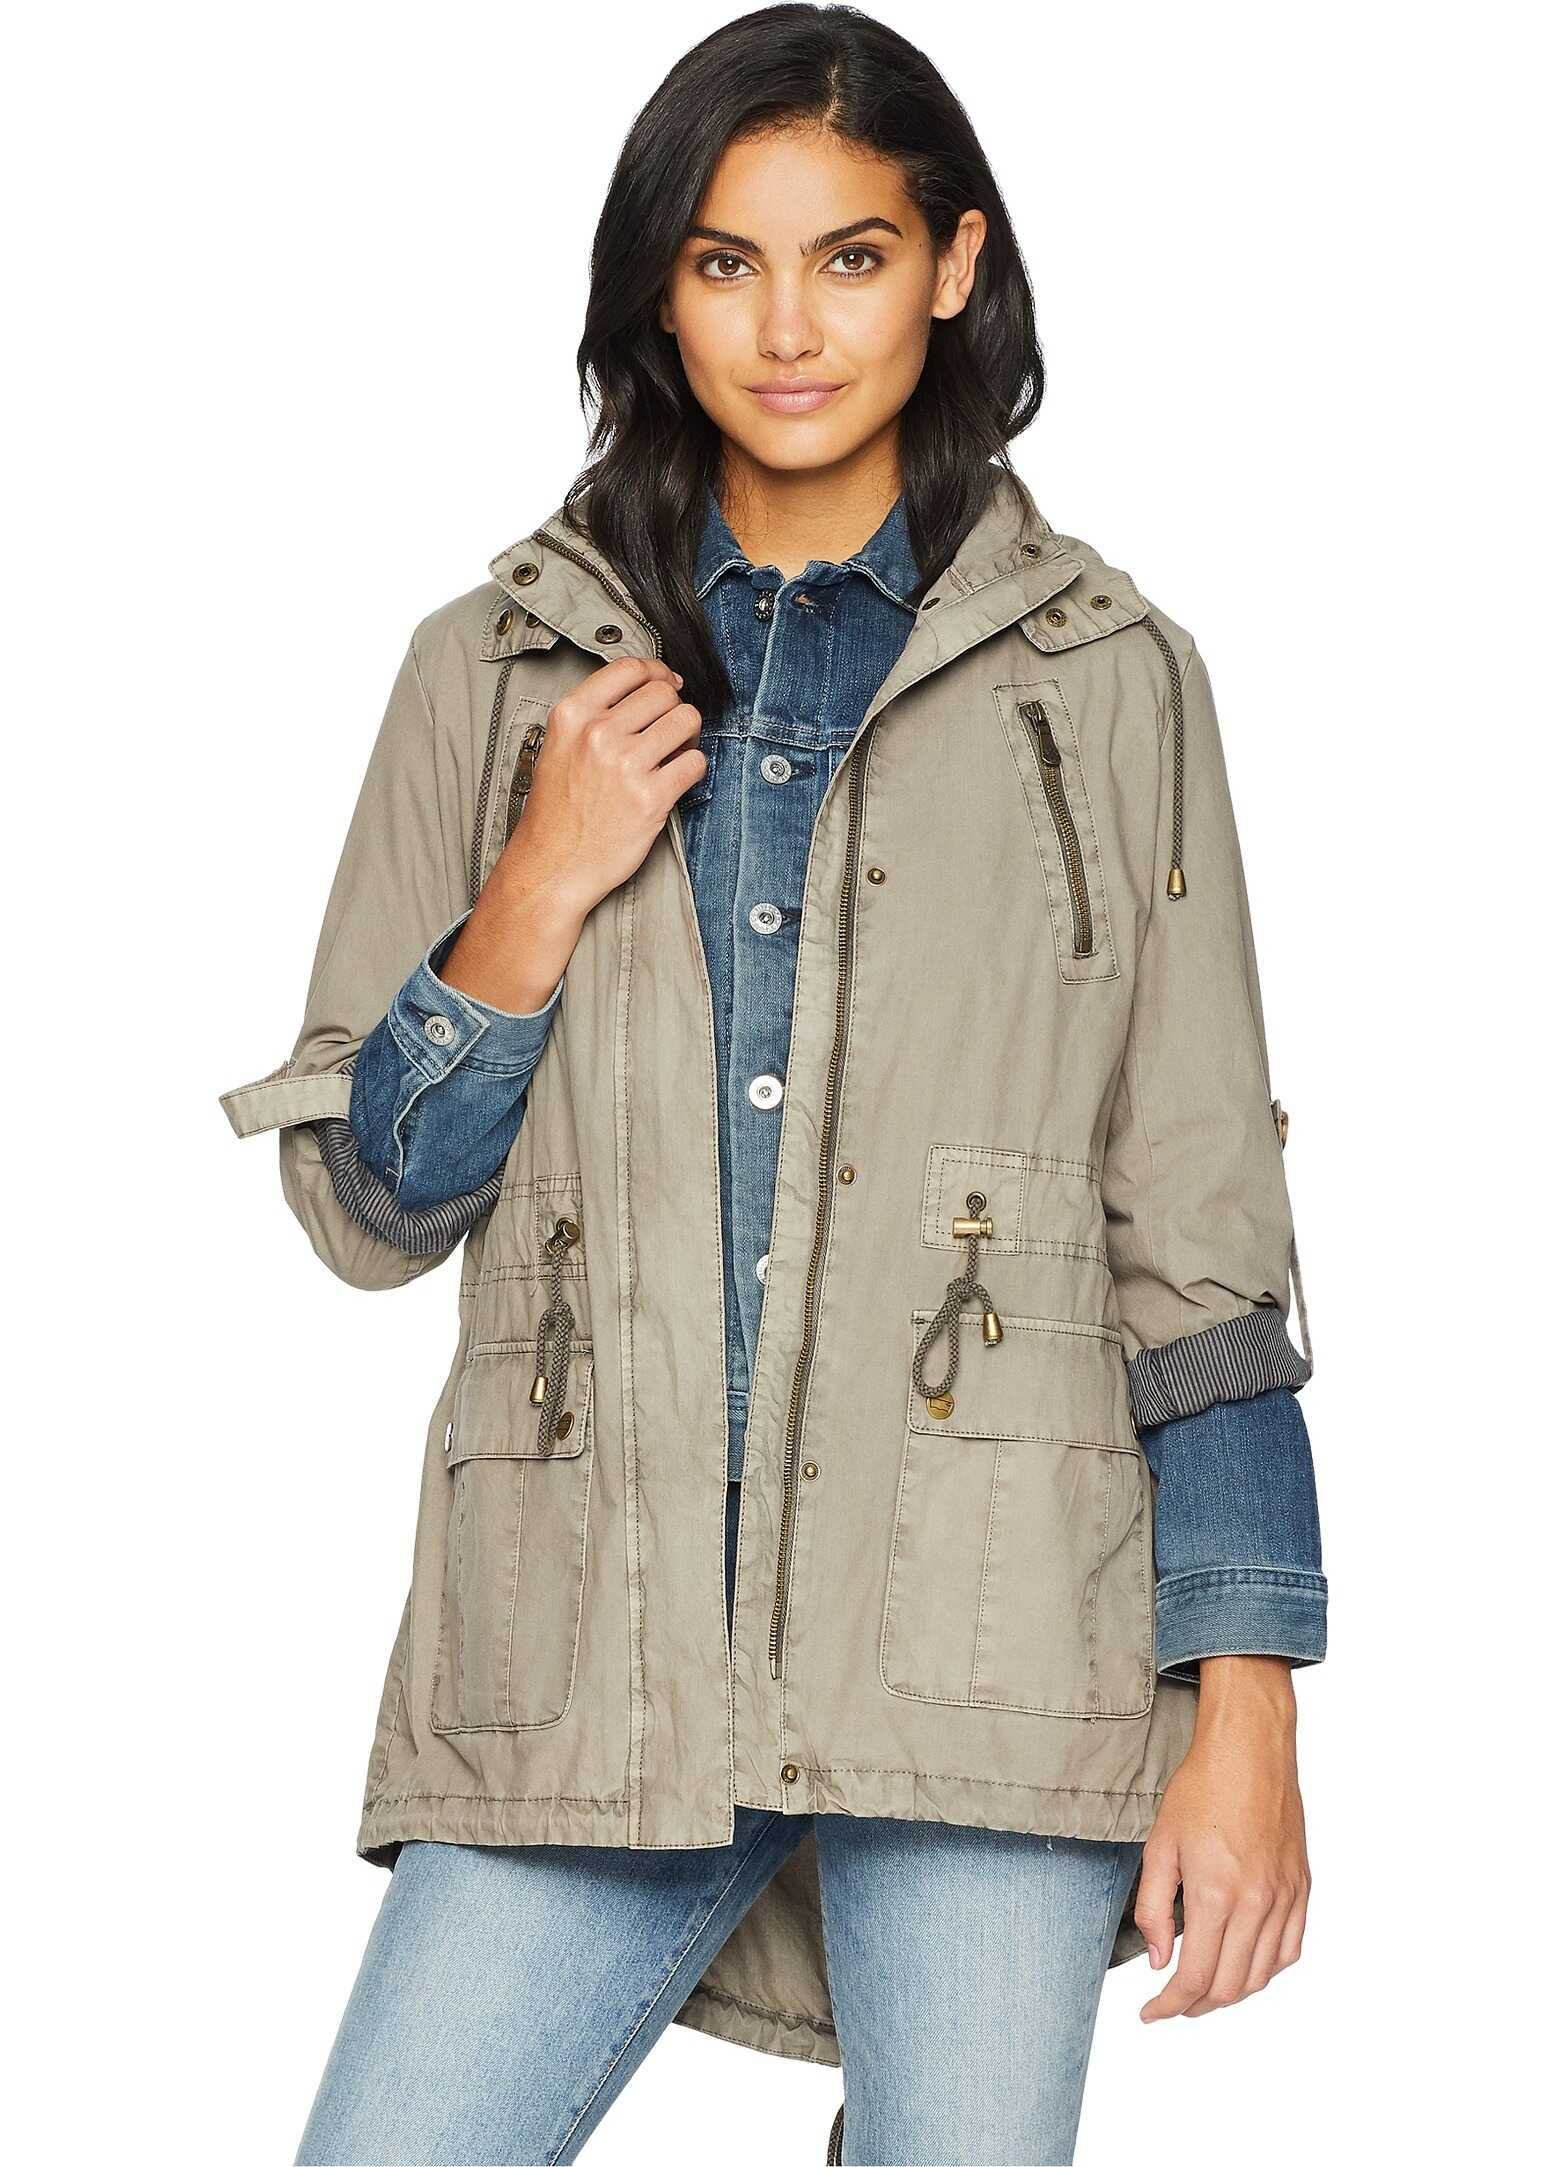 Fashion Light Weight Parka w/ Roll Up Sleeve